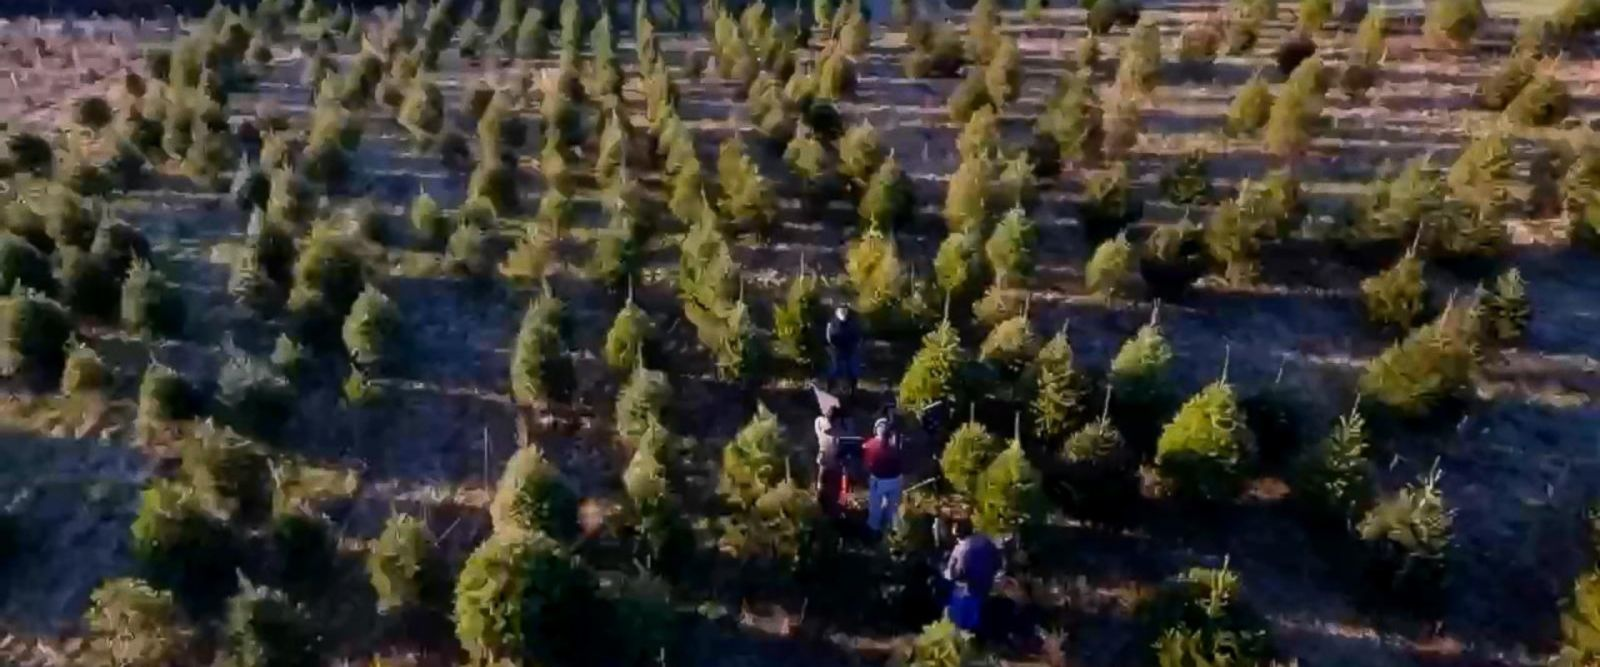 VIDEO: Christmas tree shortage expected to increase prices